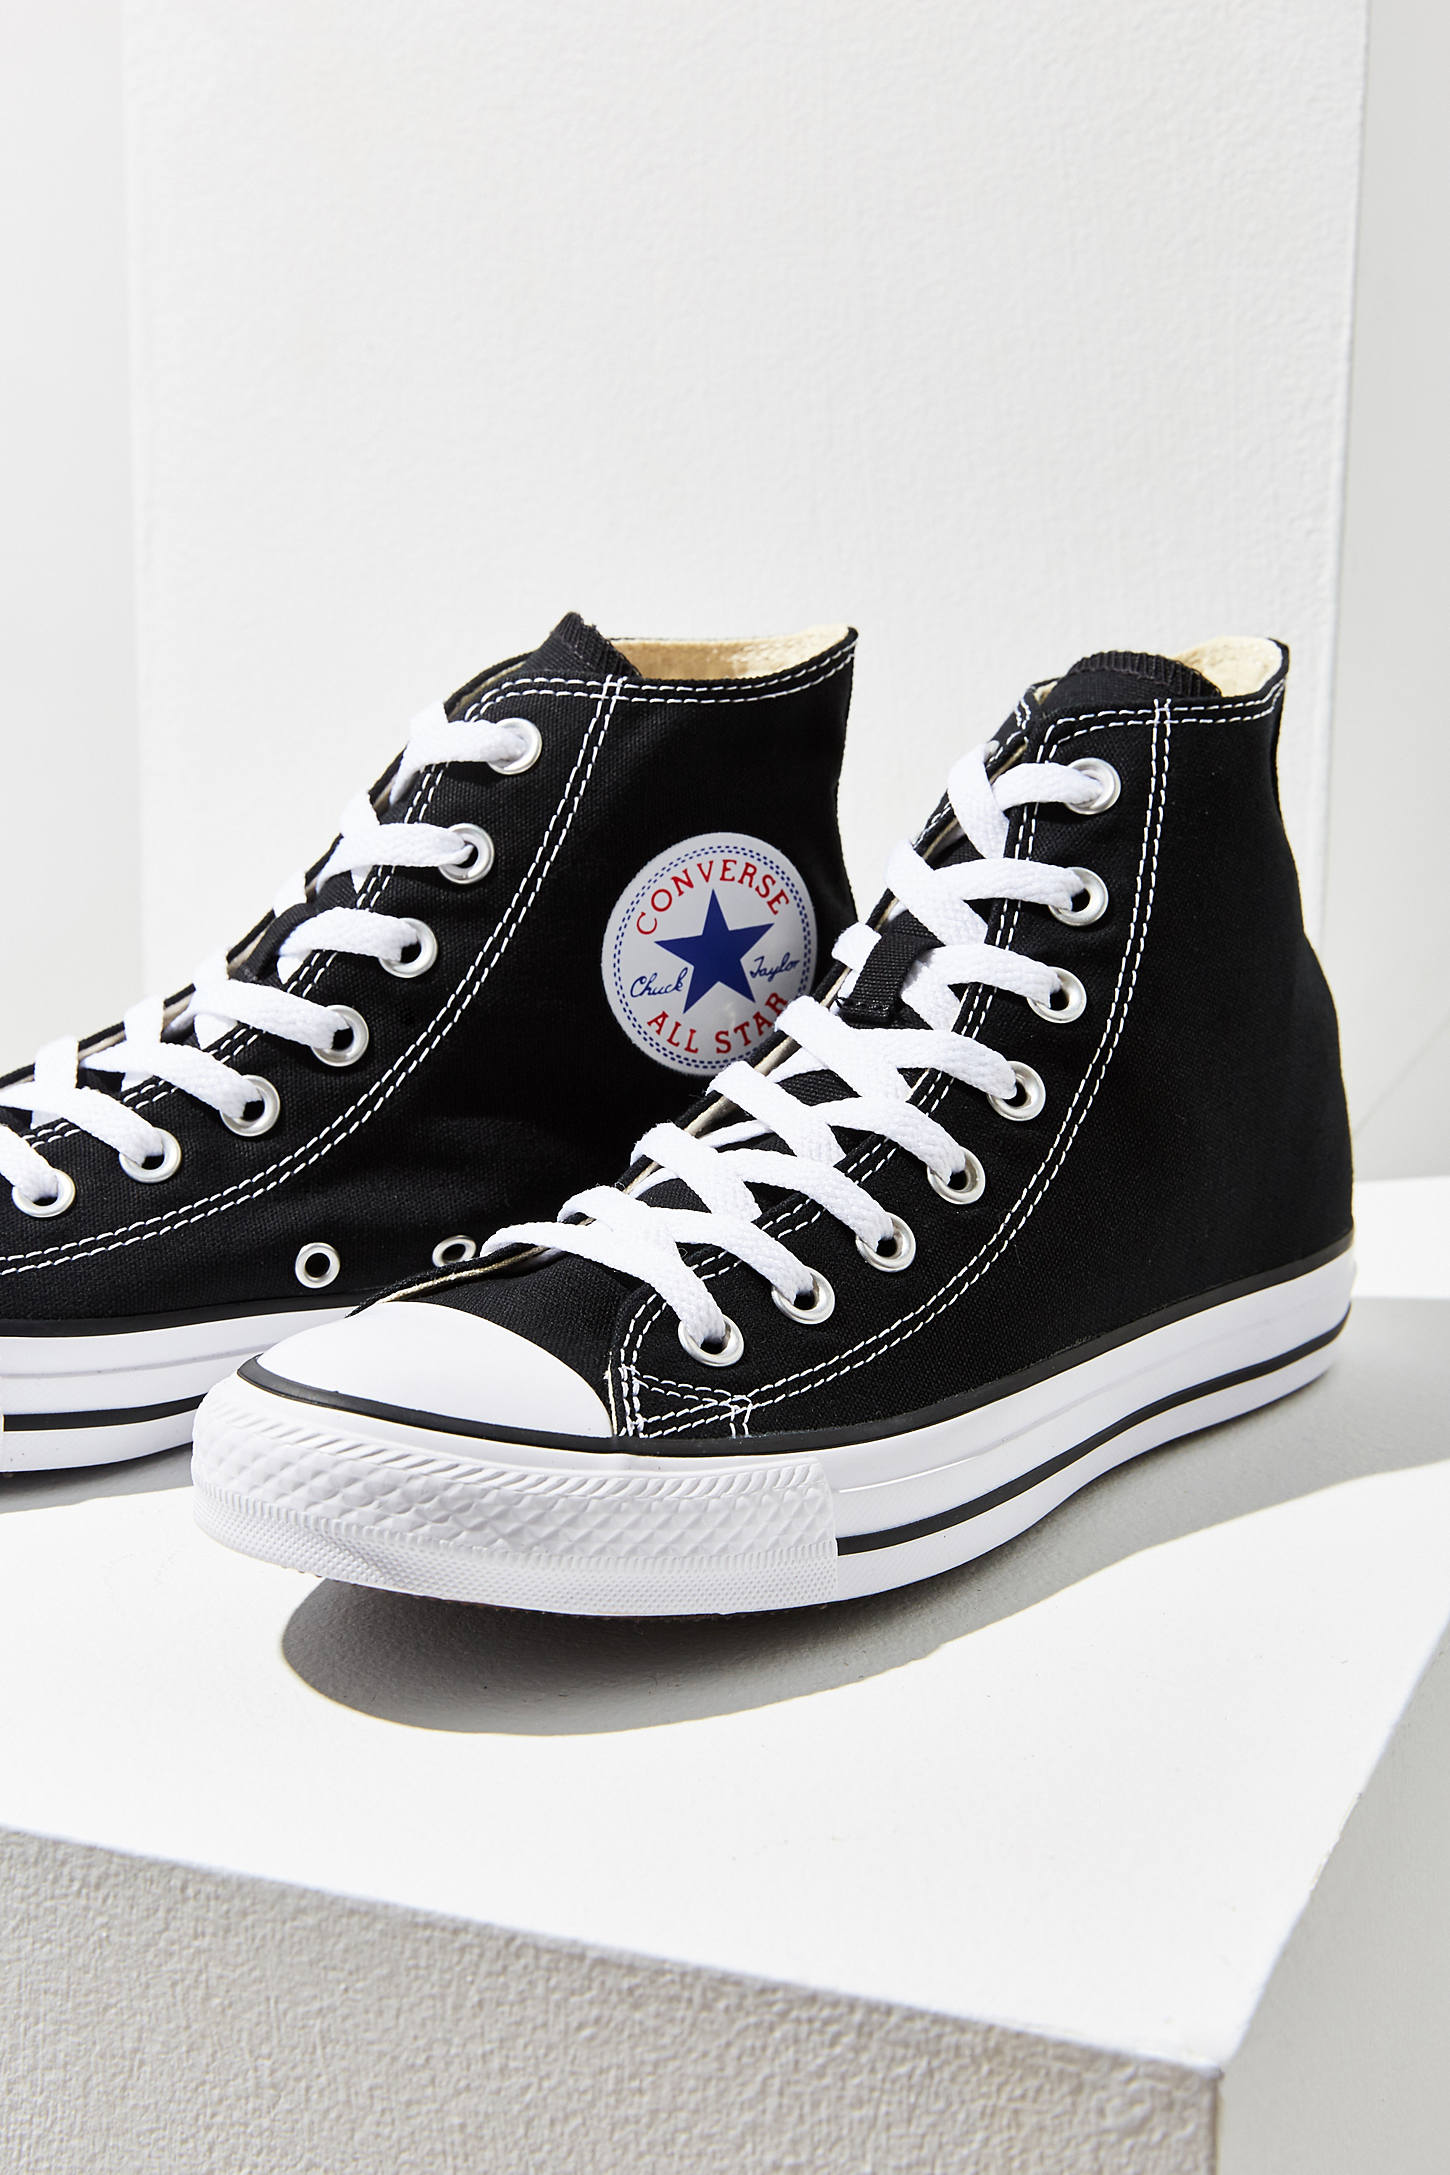 Slide View: 2: Converse Chuck Taylor All Star High Top Sneaker